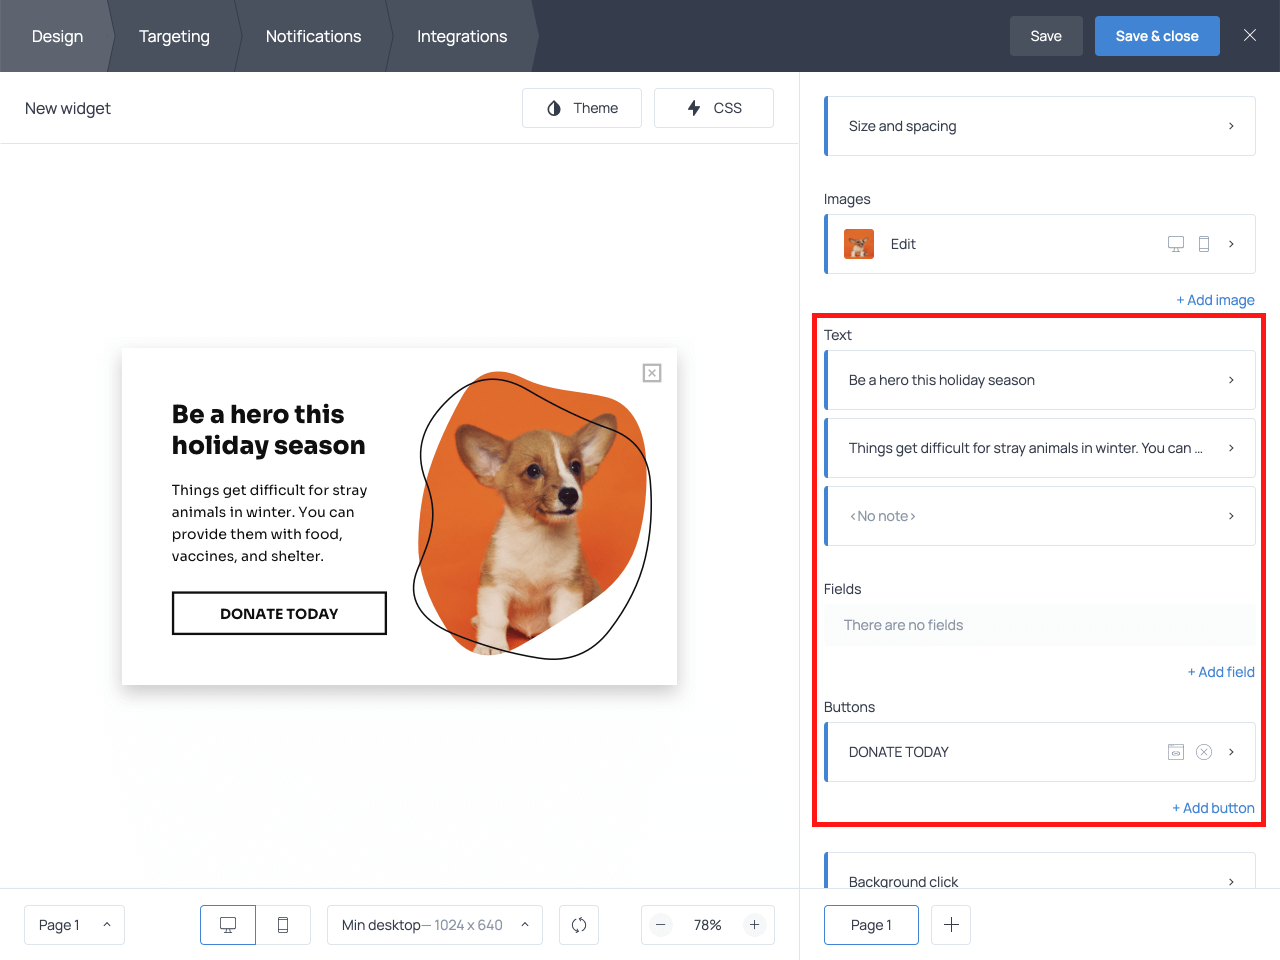 How to edit the copy on the donation popup in Getsitecontrol